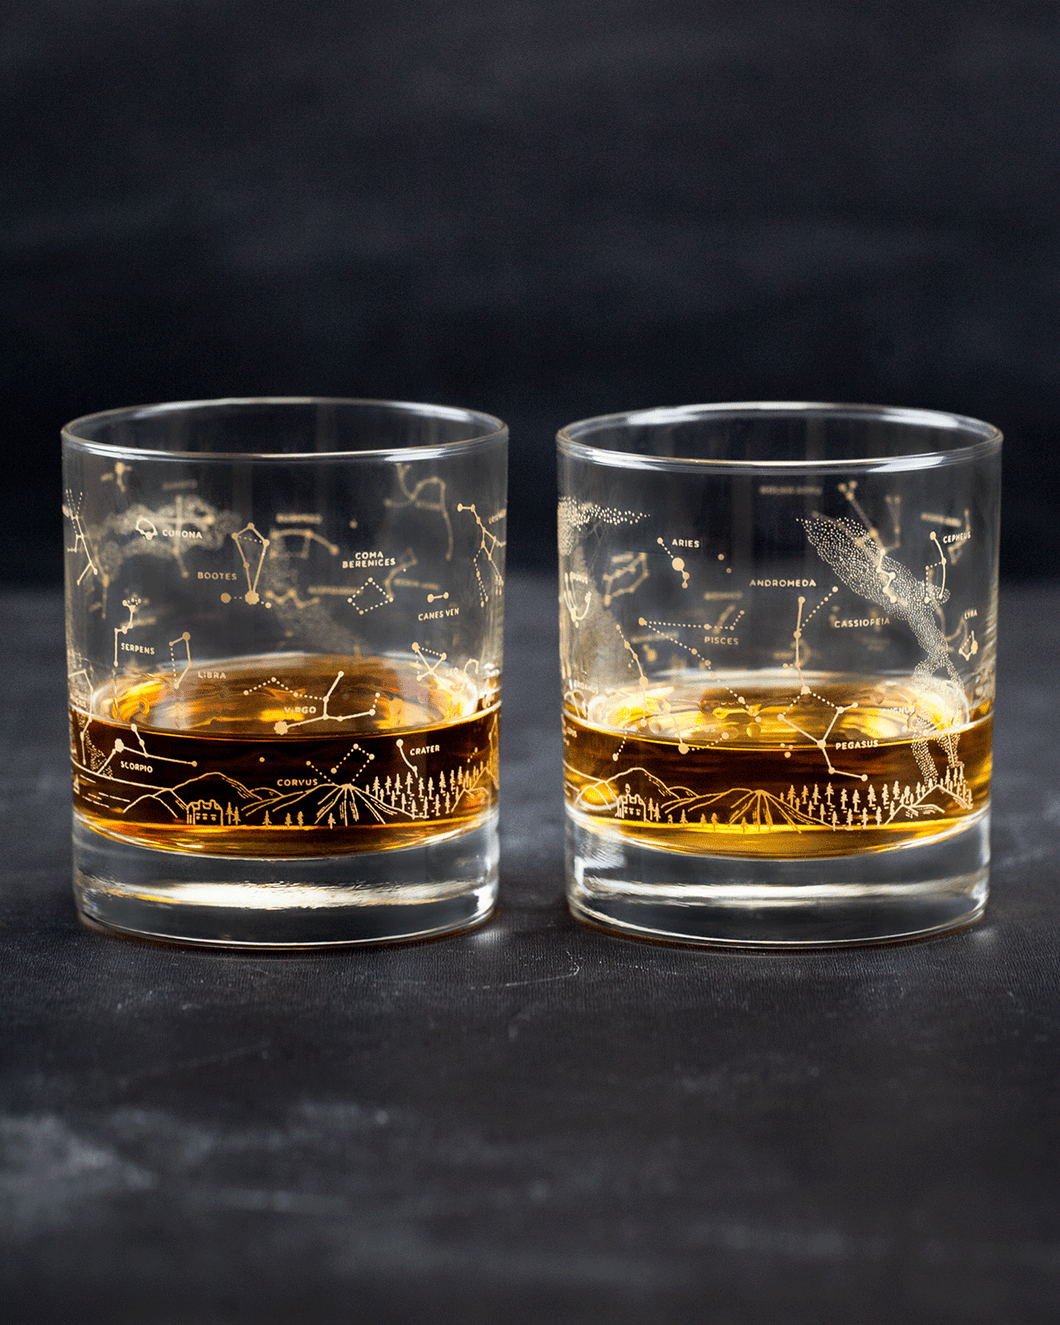 Cognitive Surplus - Night Sky Star Chart Double Old-Fashioned Glasses (Pair)